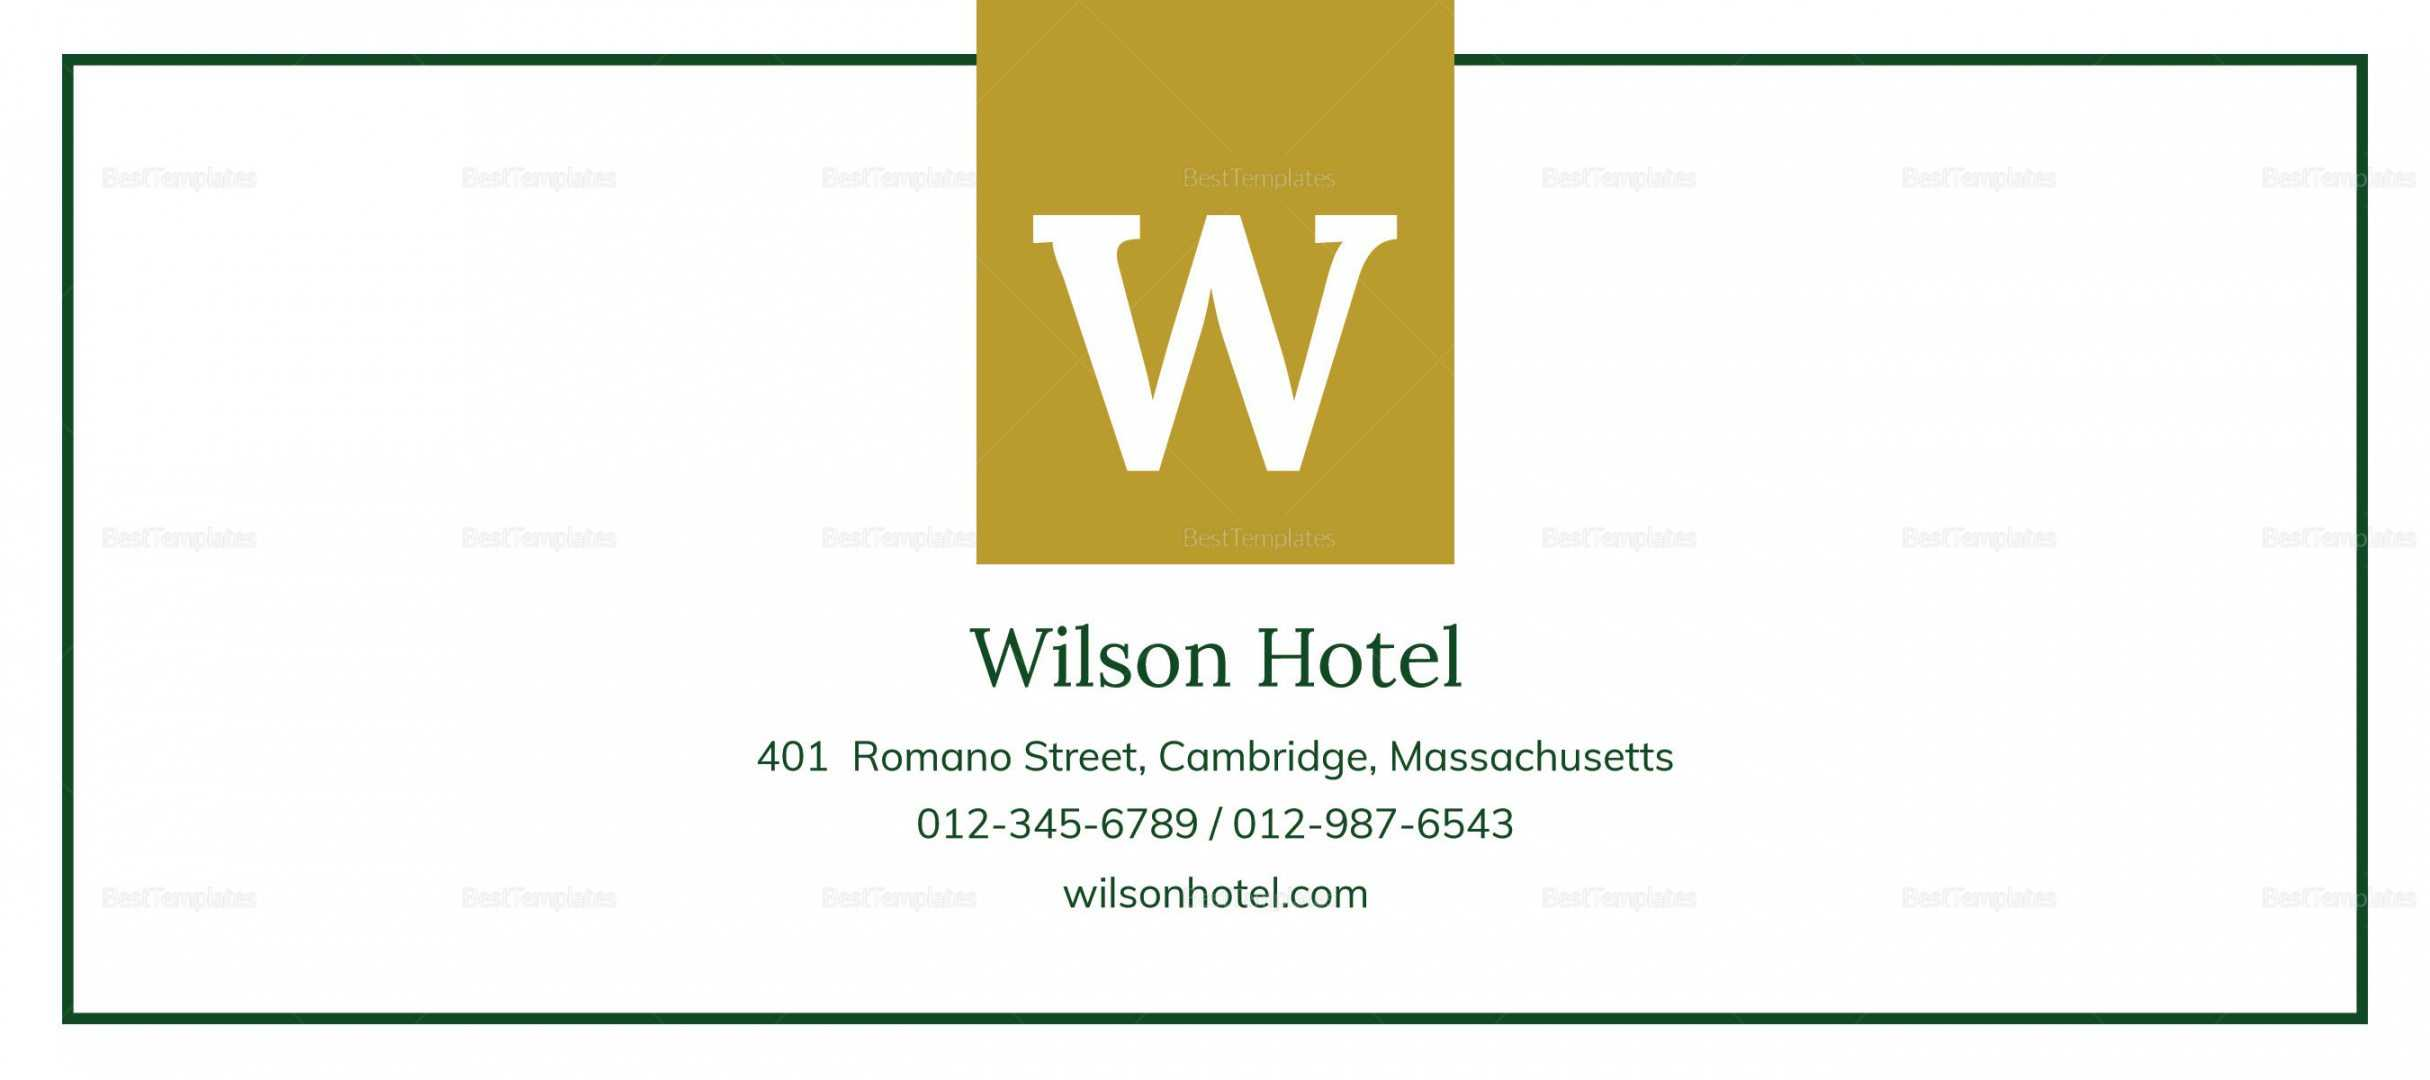 Free Hotel Gift Certificate Design Template In Psd Word With Publisher Gift Certificate Template